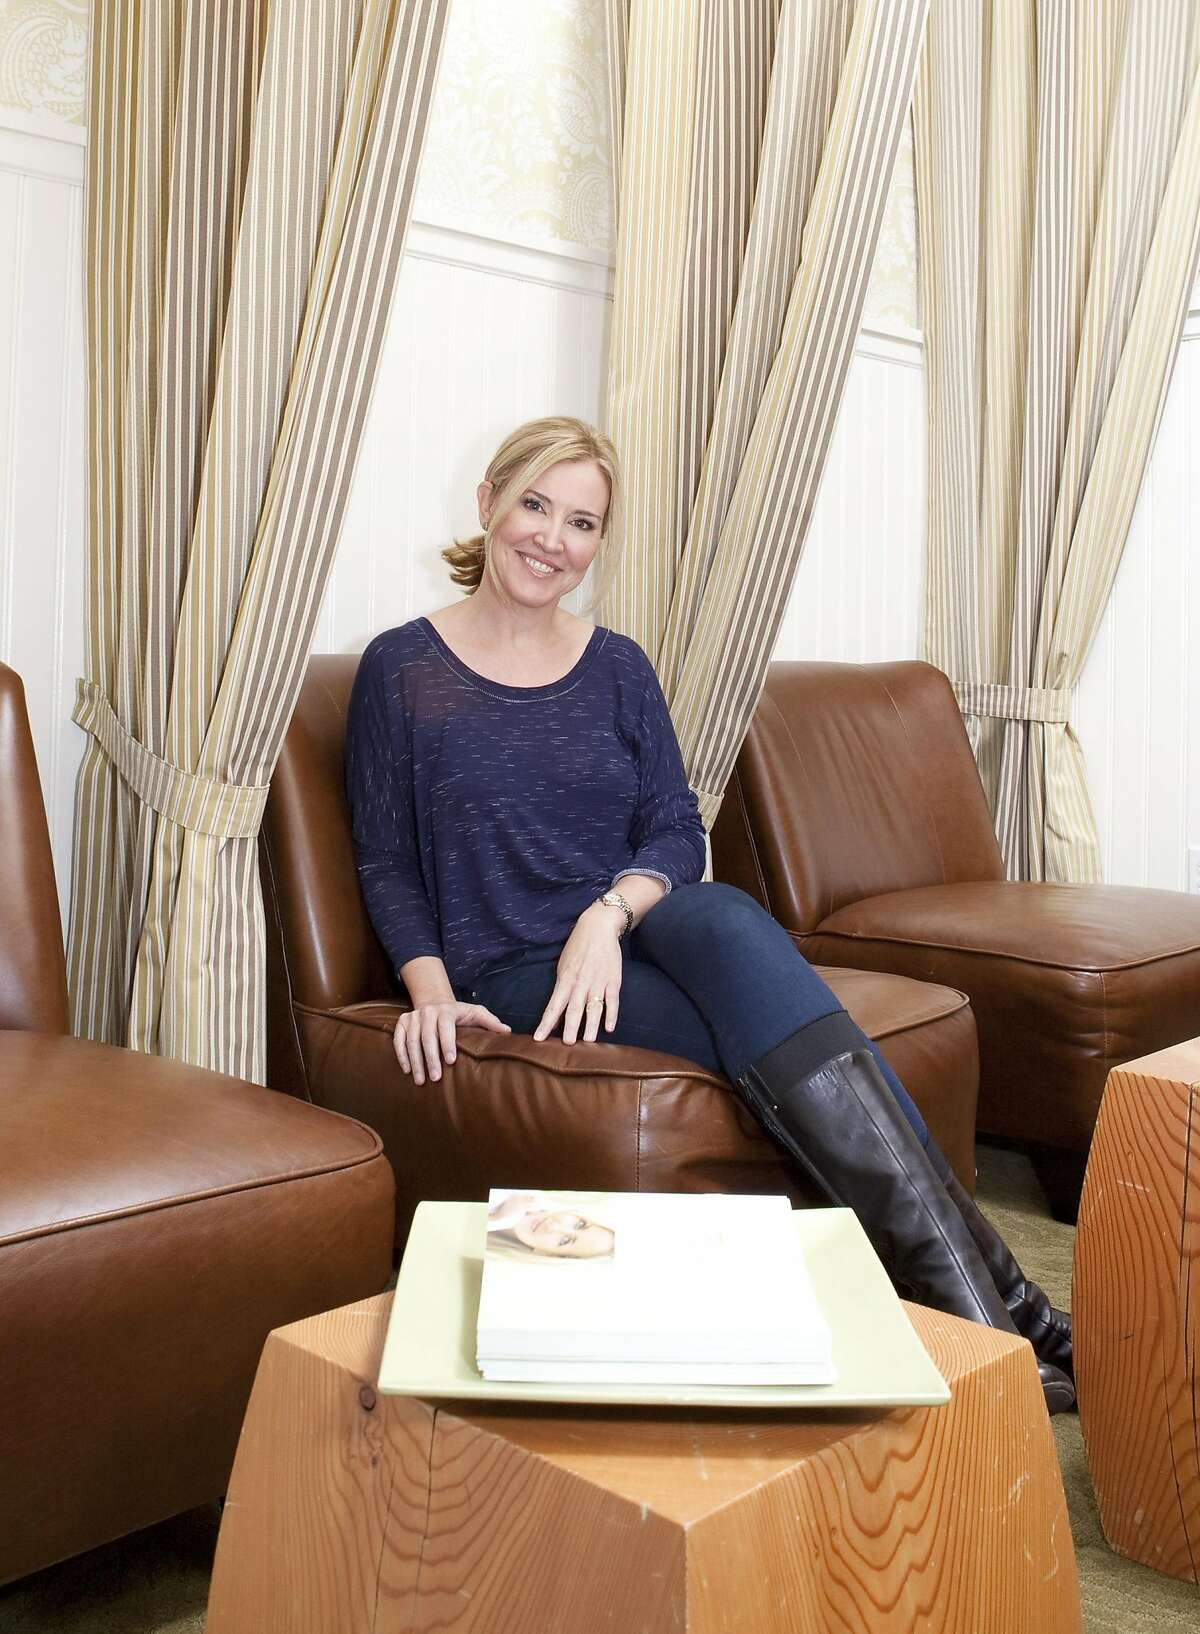 Lynn Heublein, founder of SkinSpirit skin care salons, was a tech entrepreneur who learned to maintain a work-life balance after burning out in the startup world.